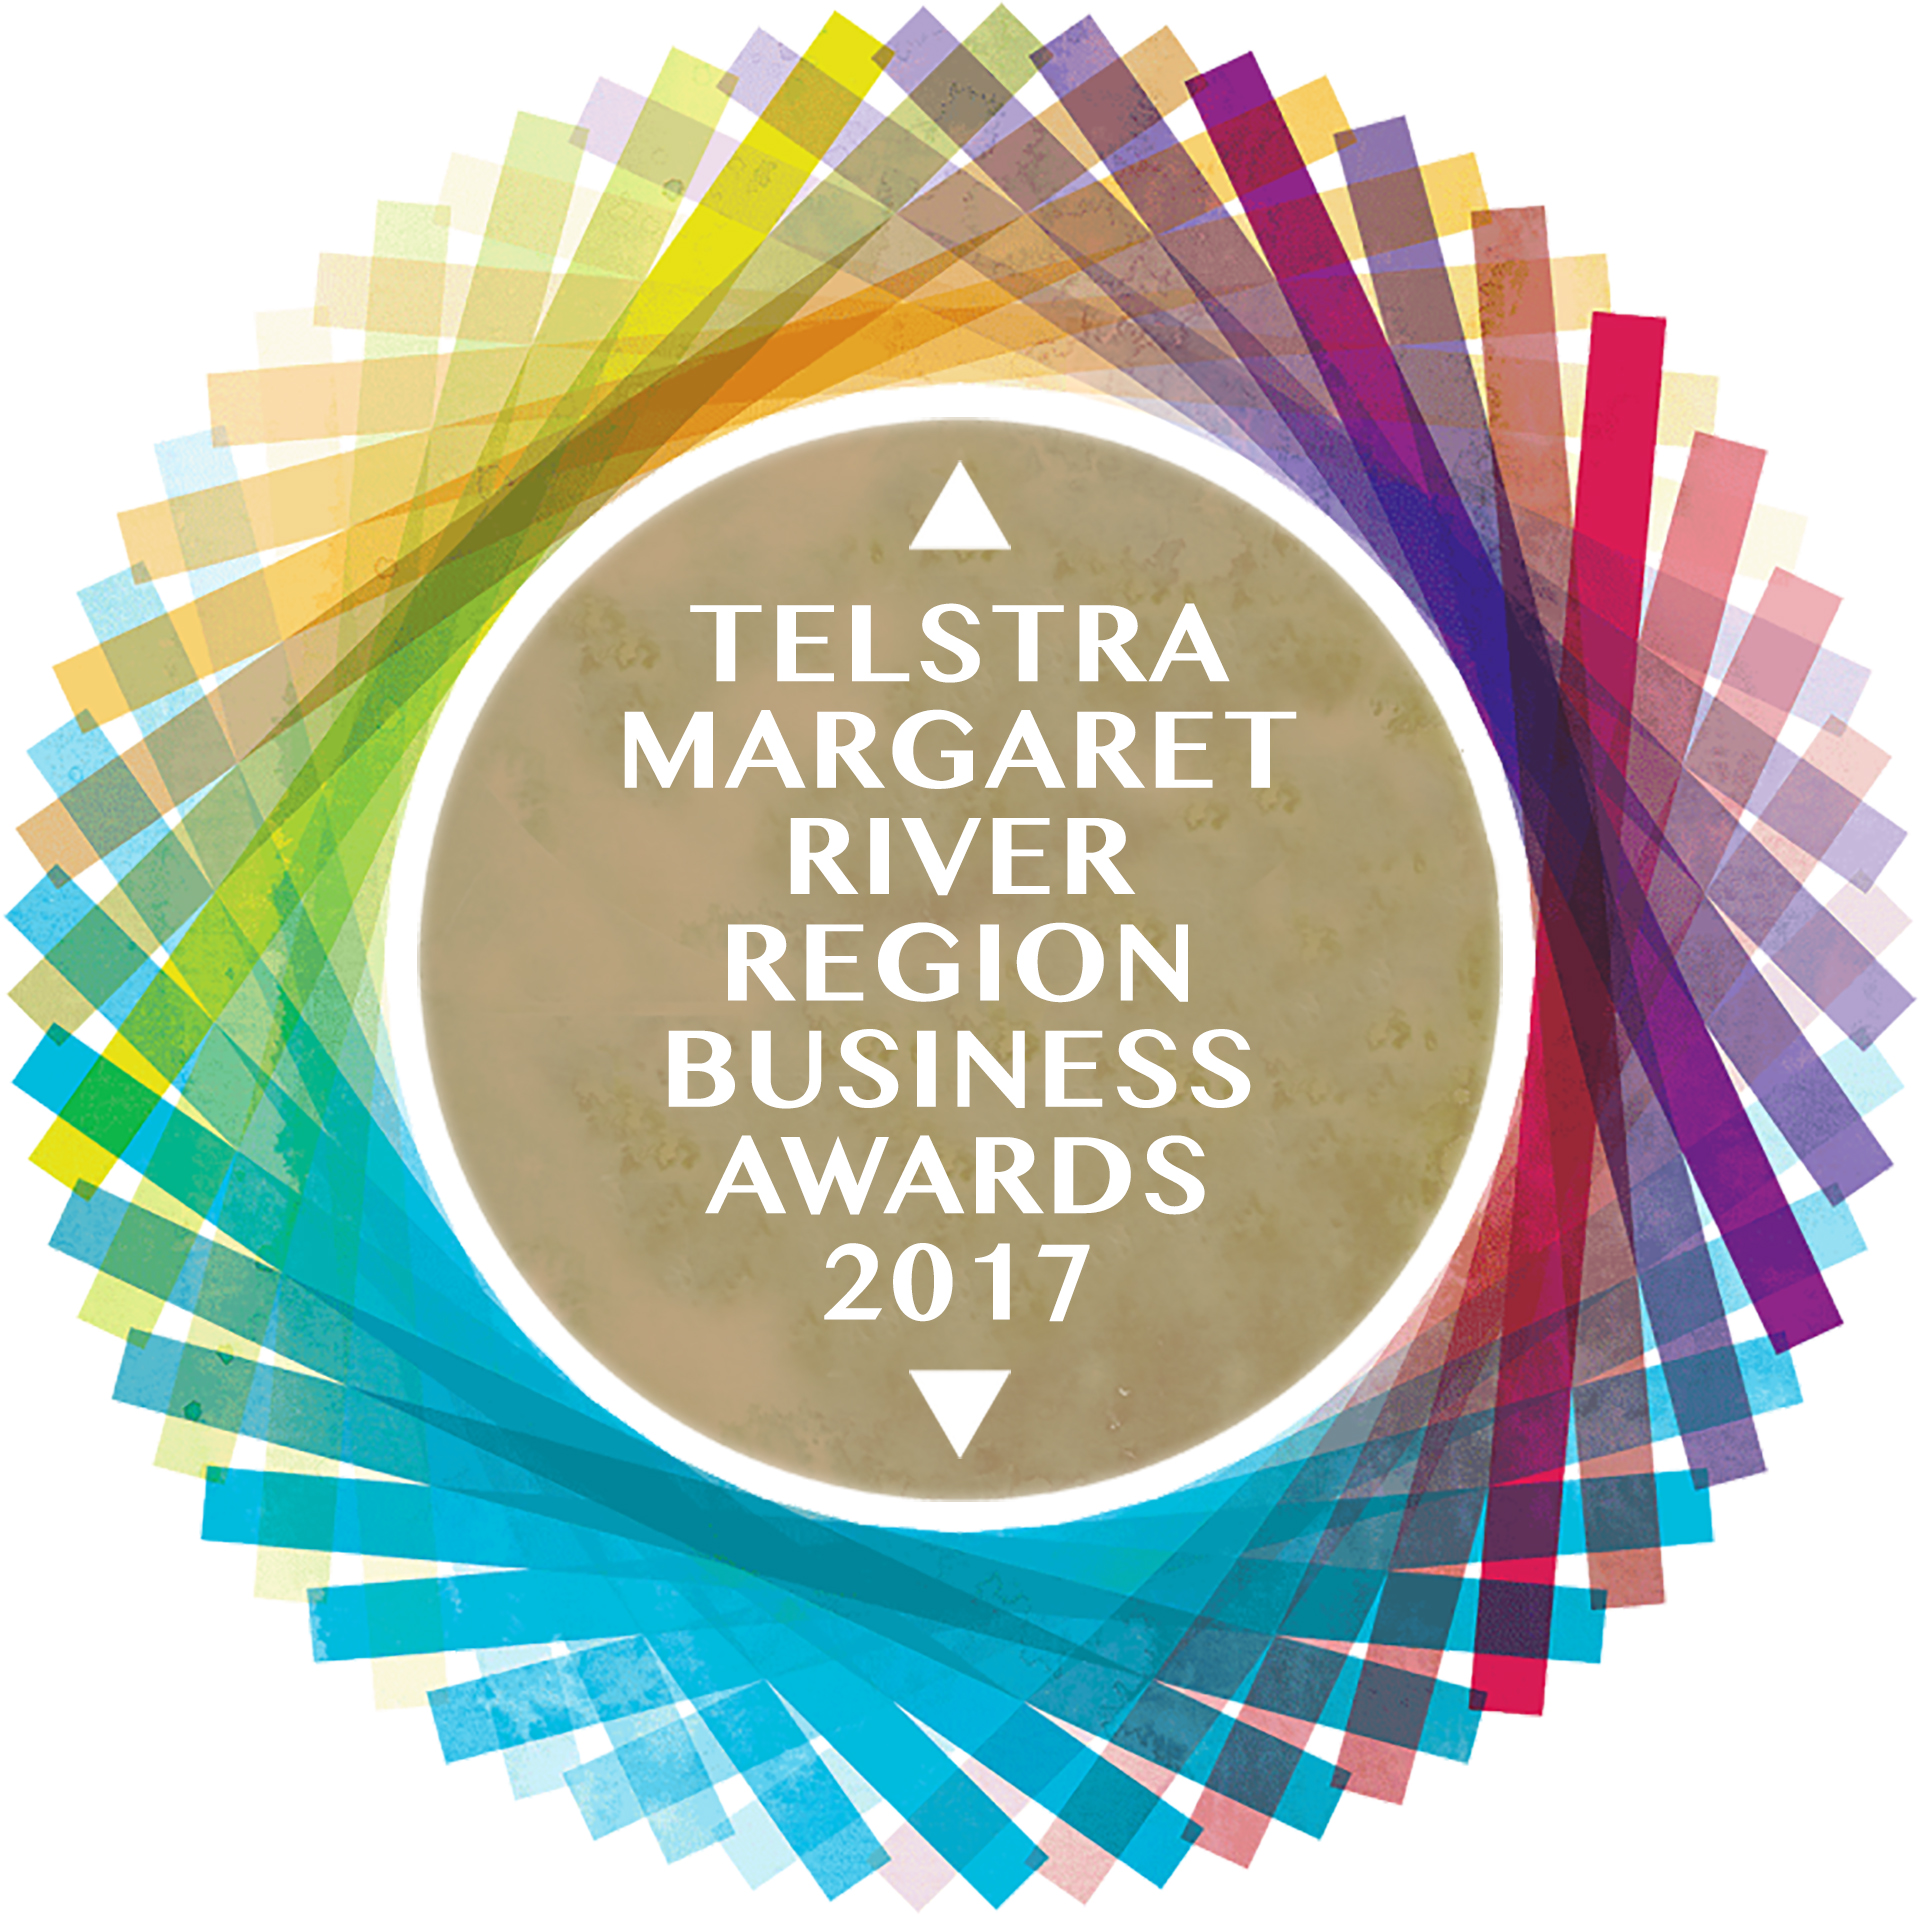 Entries are now open for the 2017 Telstra Margaret River Regional Business Awards